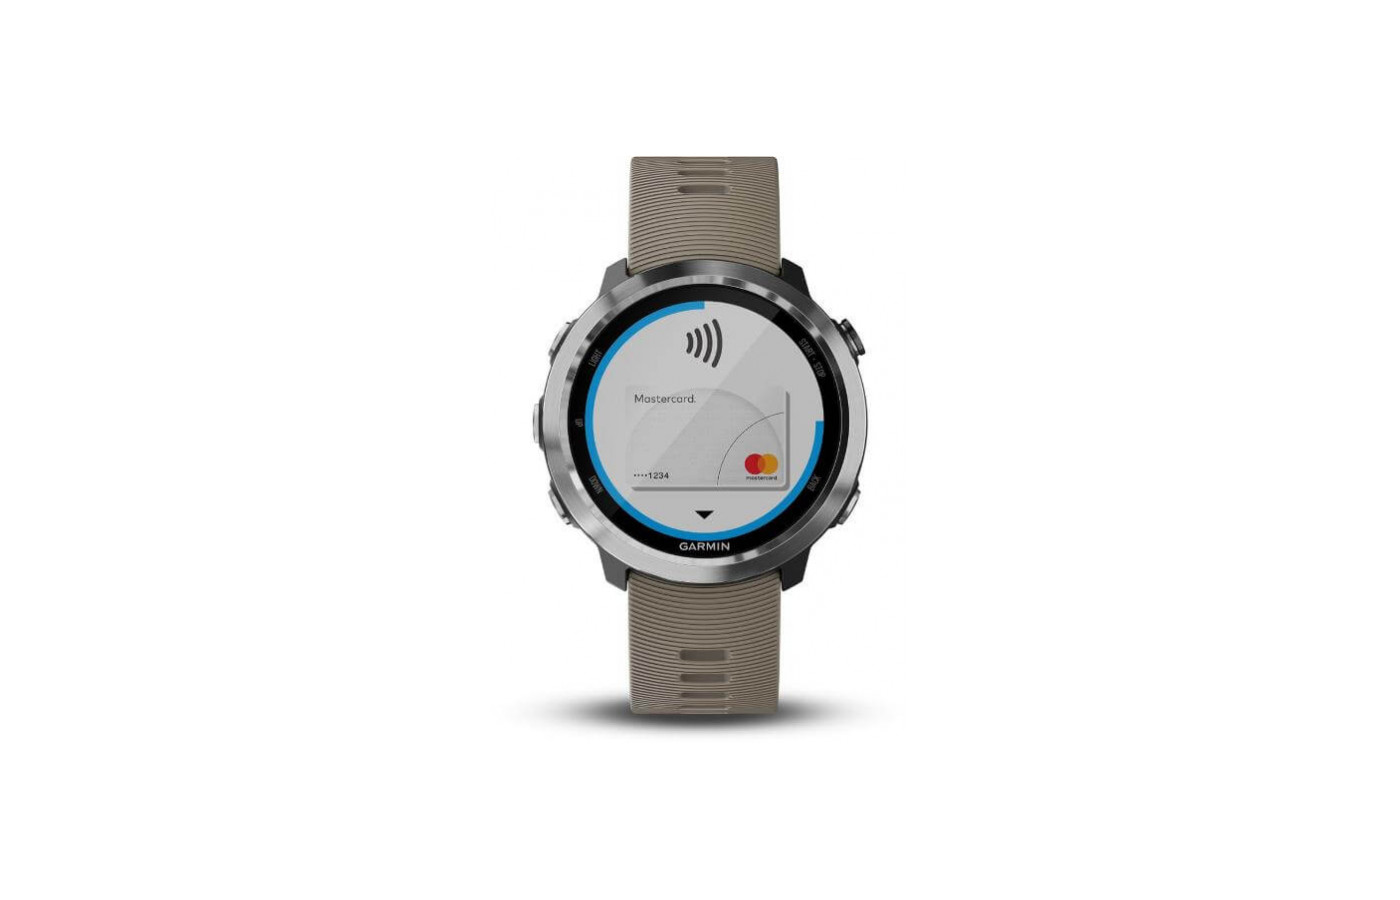 The Forerunner 645 includes Garmin Pay for quicker and easier purchases.